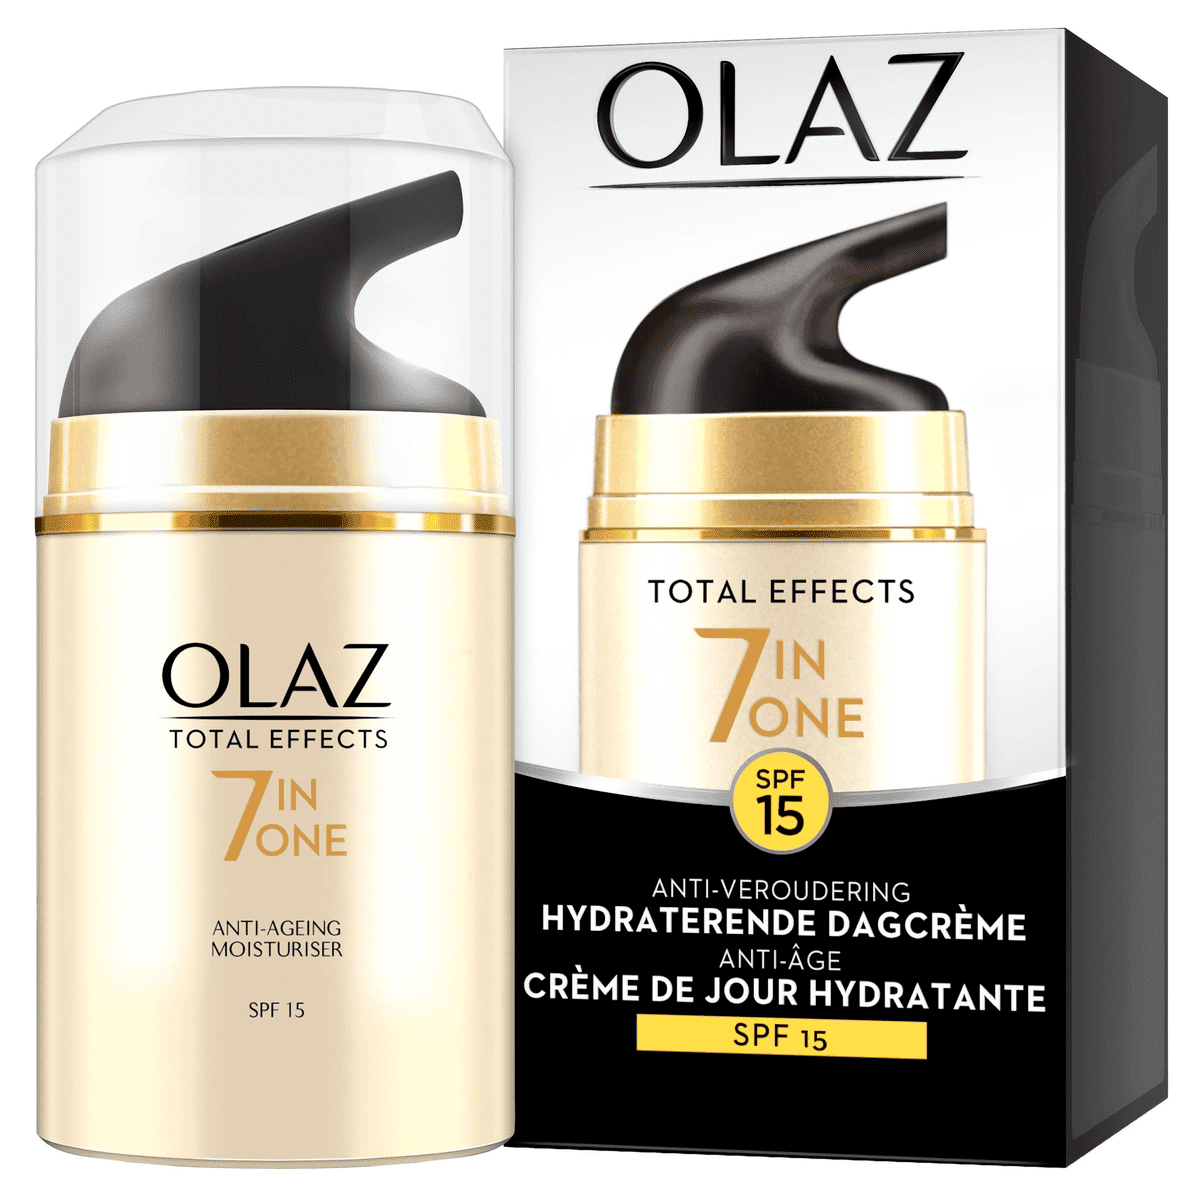 Olay/Olaz Total Effects 7-in-1 Hydraterende Crème SPF15 50 ML